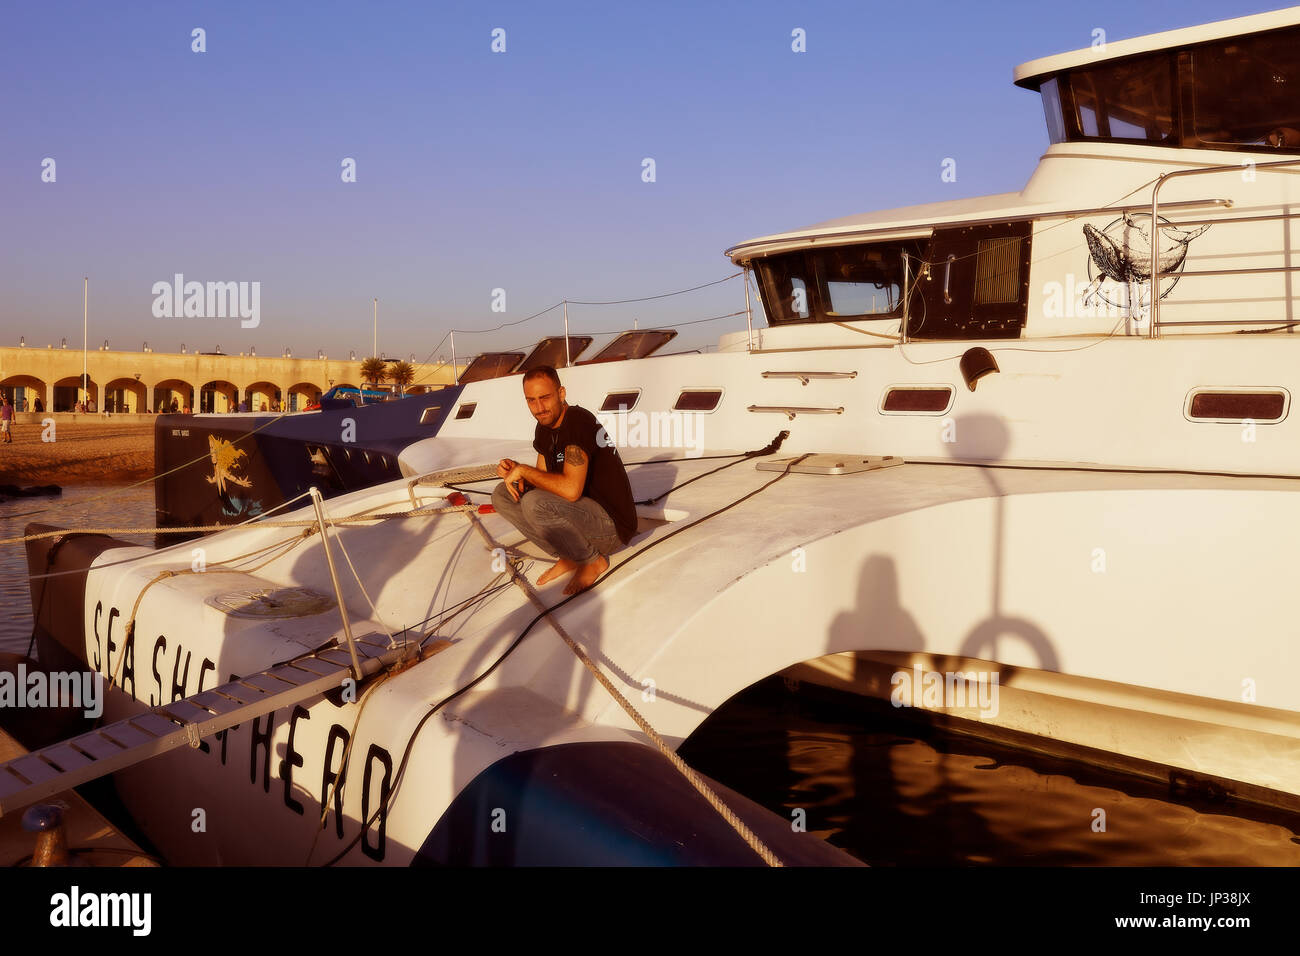 OSTIA, LAZIO, ITALY - OCTOBER 18, 2014: The trimaran of Sea Shepherd Brigitte Bardot docks in the port of Ostia. - Stock Image